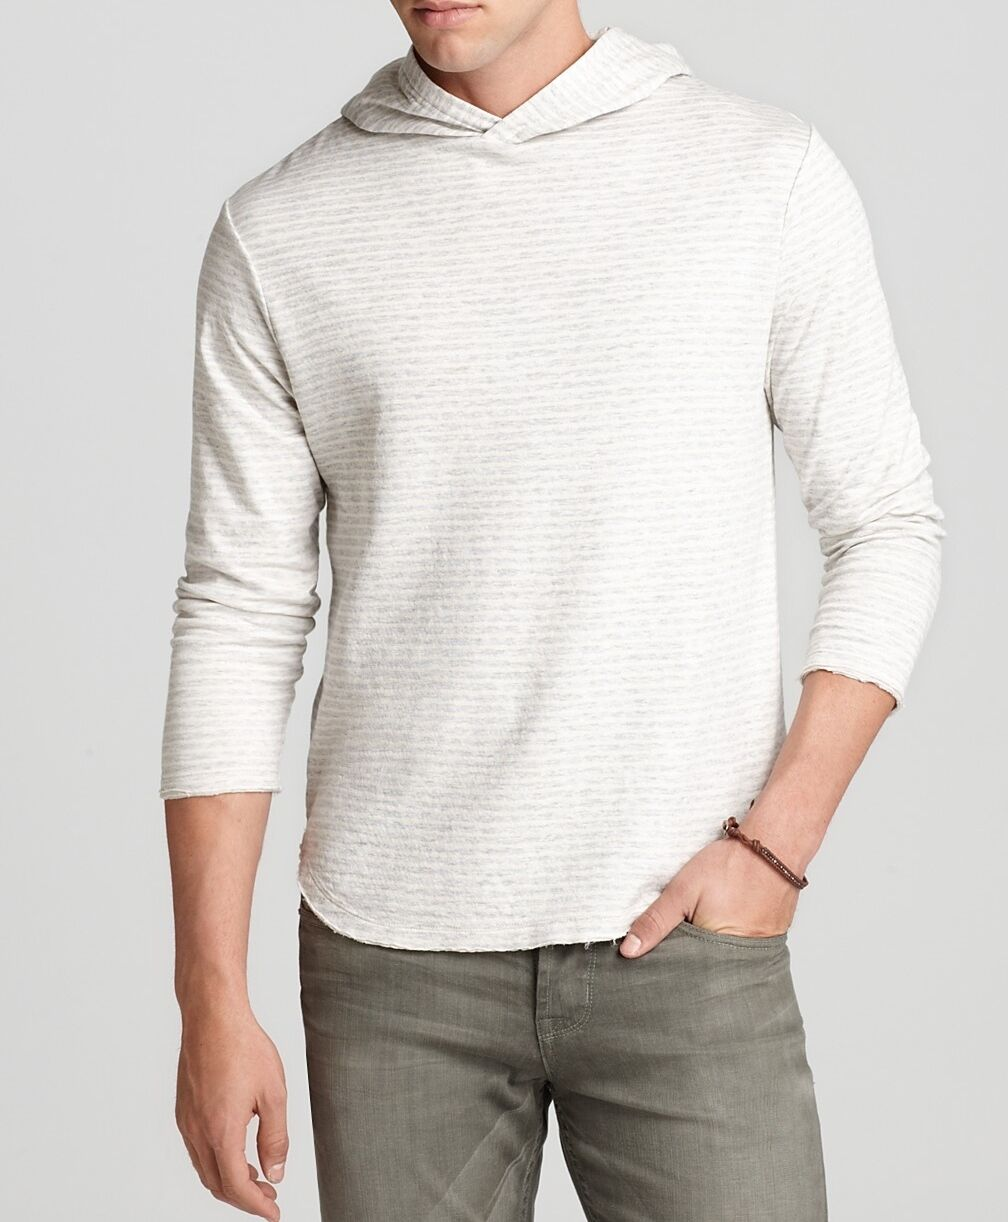 Nwt 169 Joe's Long Sleeve Cotton Pullover Sweater Hoodie Shirt Top Natural S